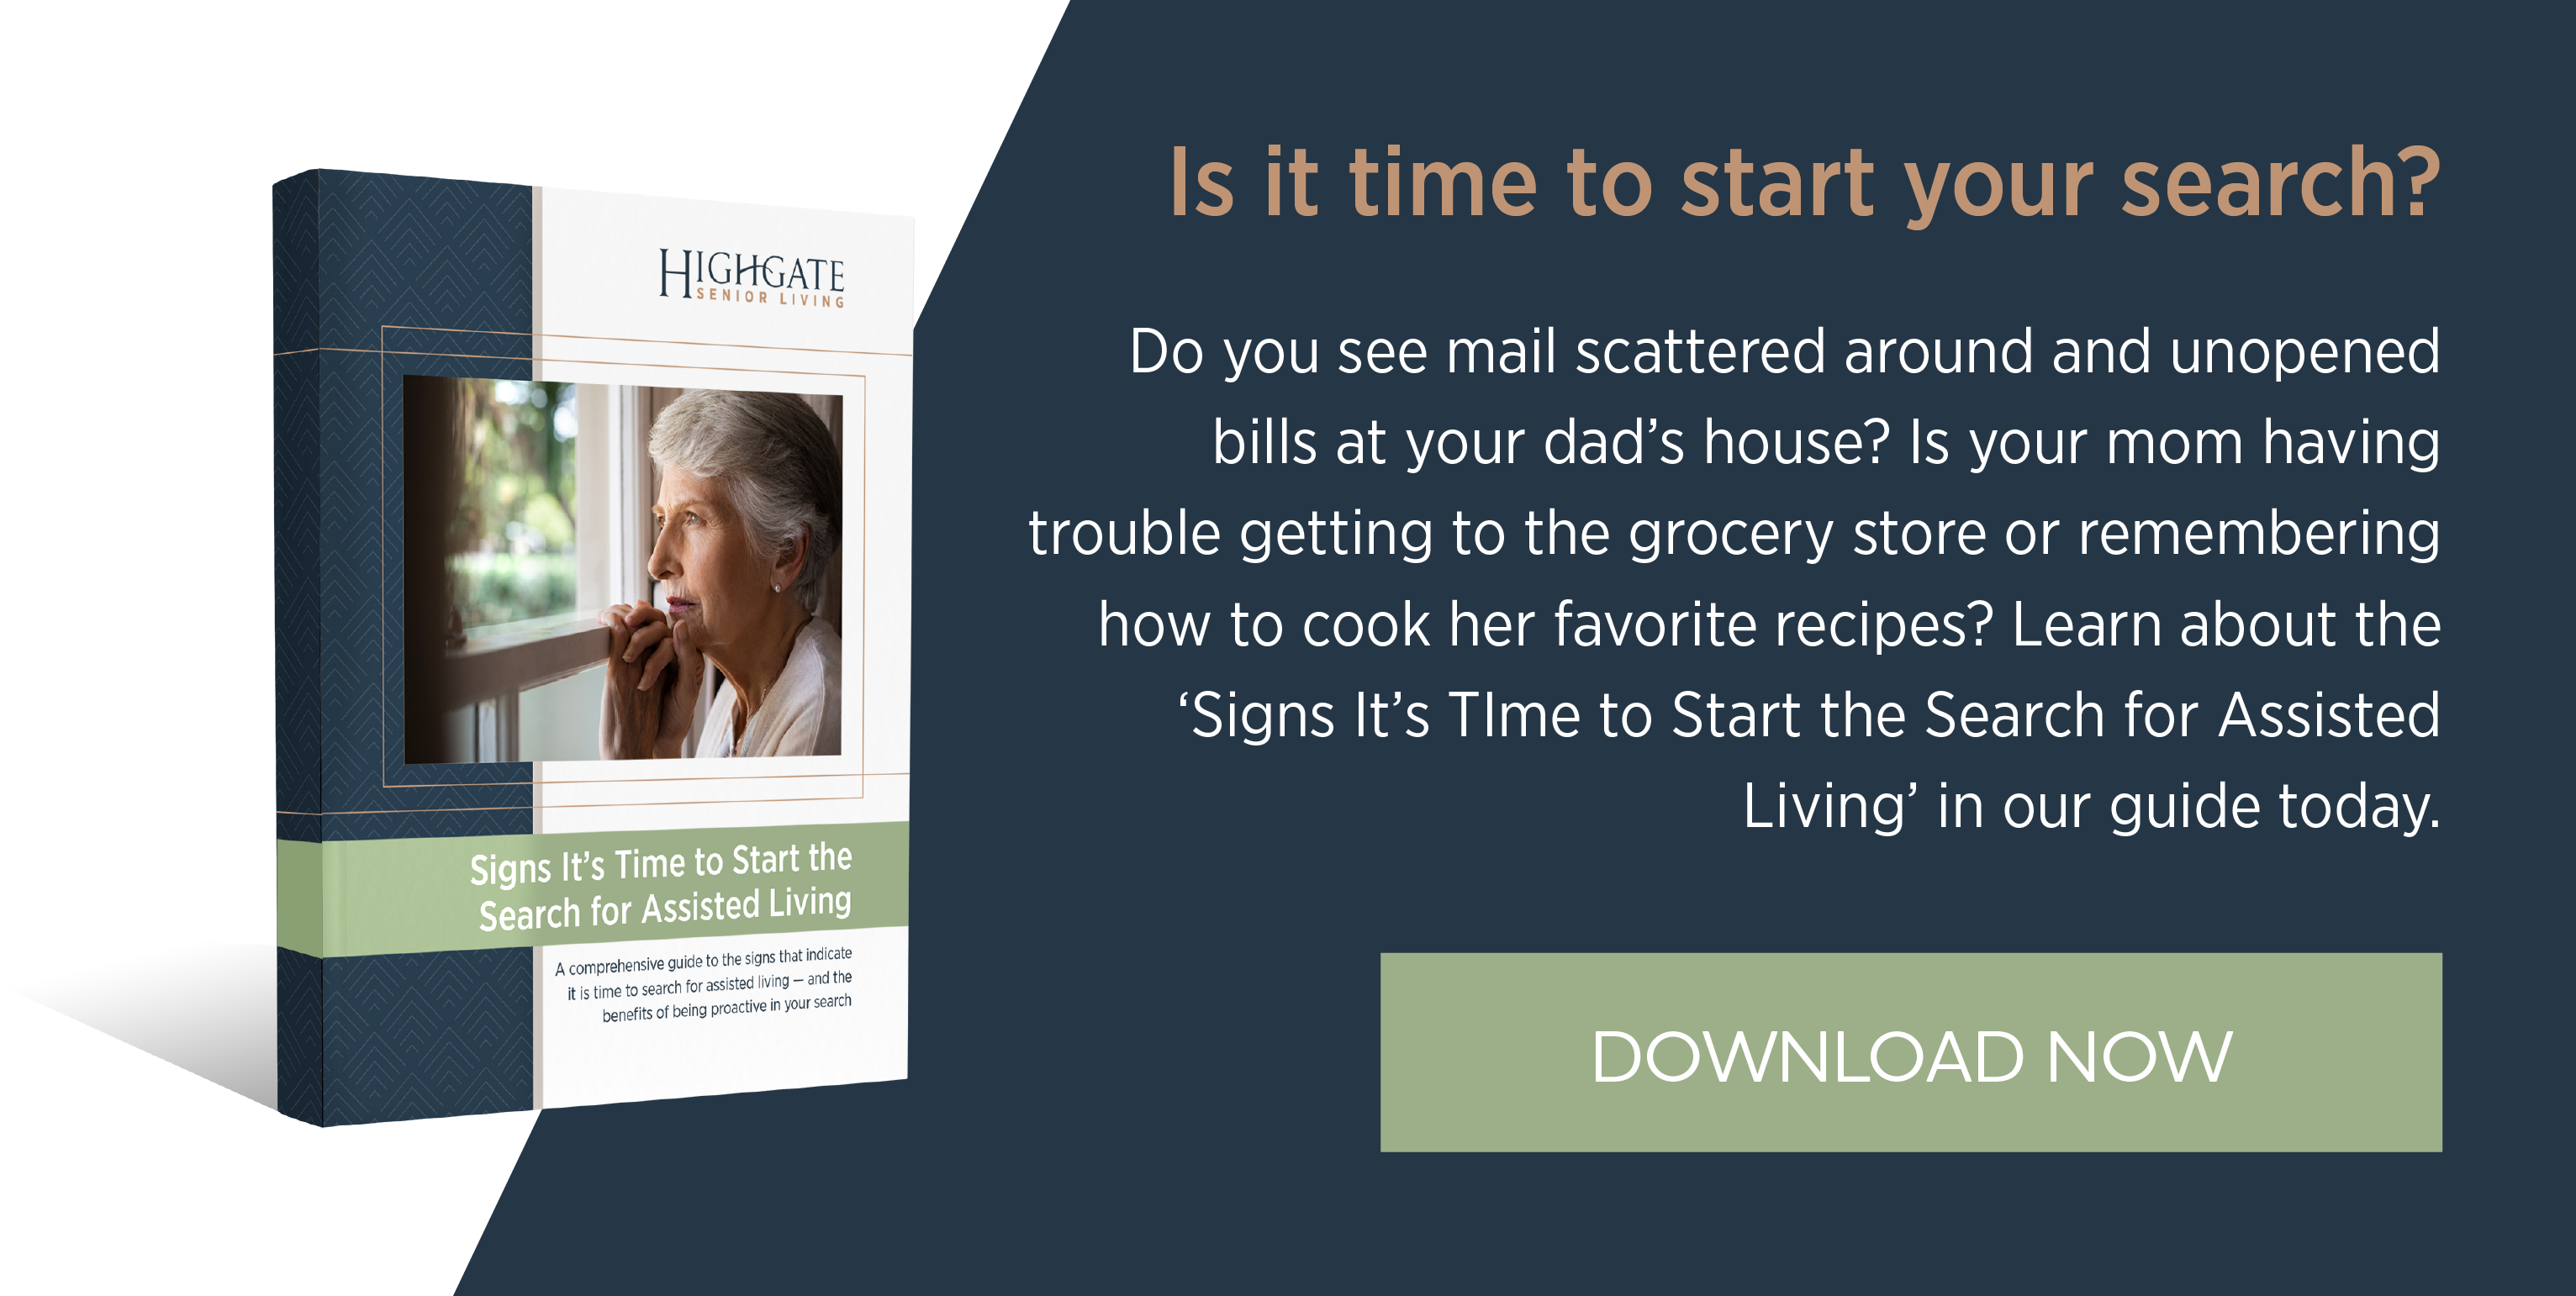 Signs It's Time to Start the Search for Assisted Living